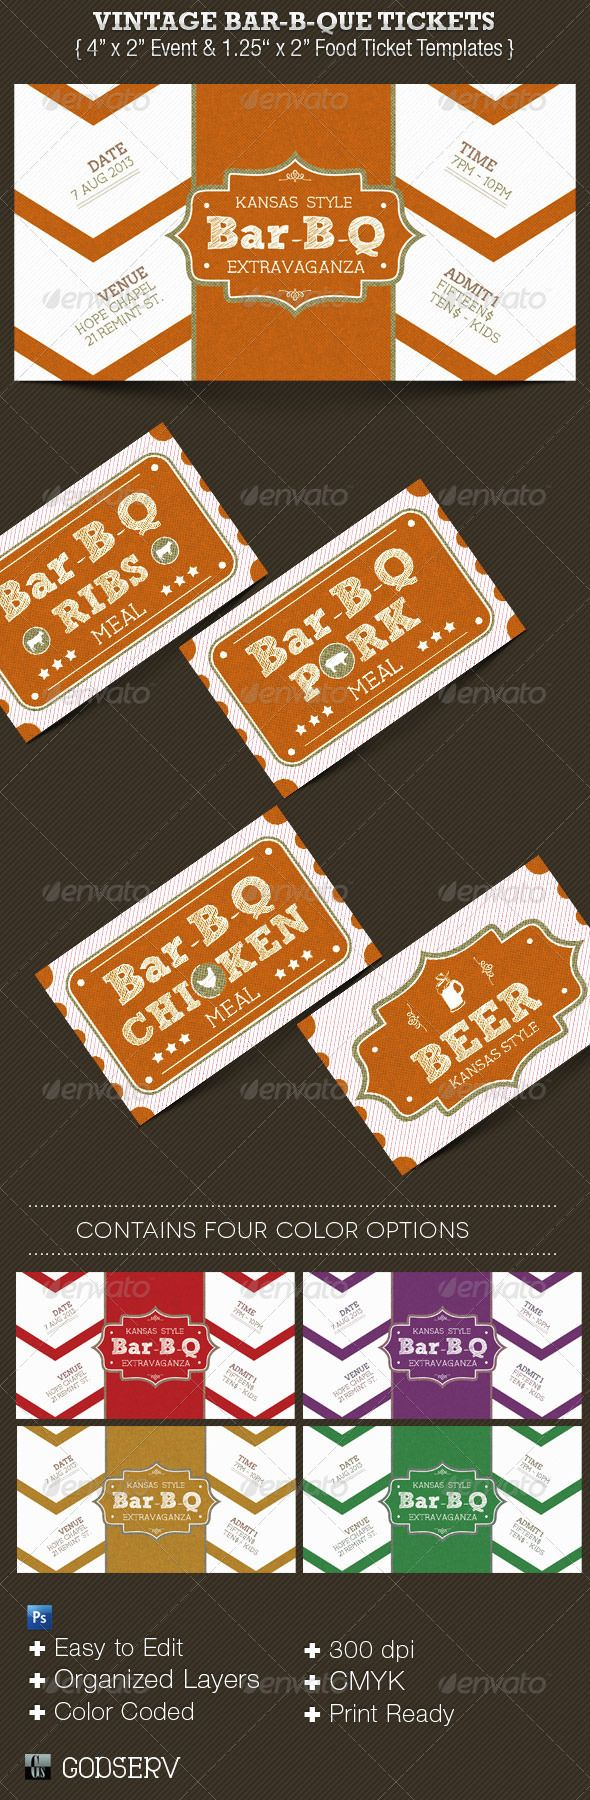 bbq plate ticket template amazing drink token template images resume